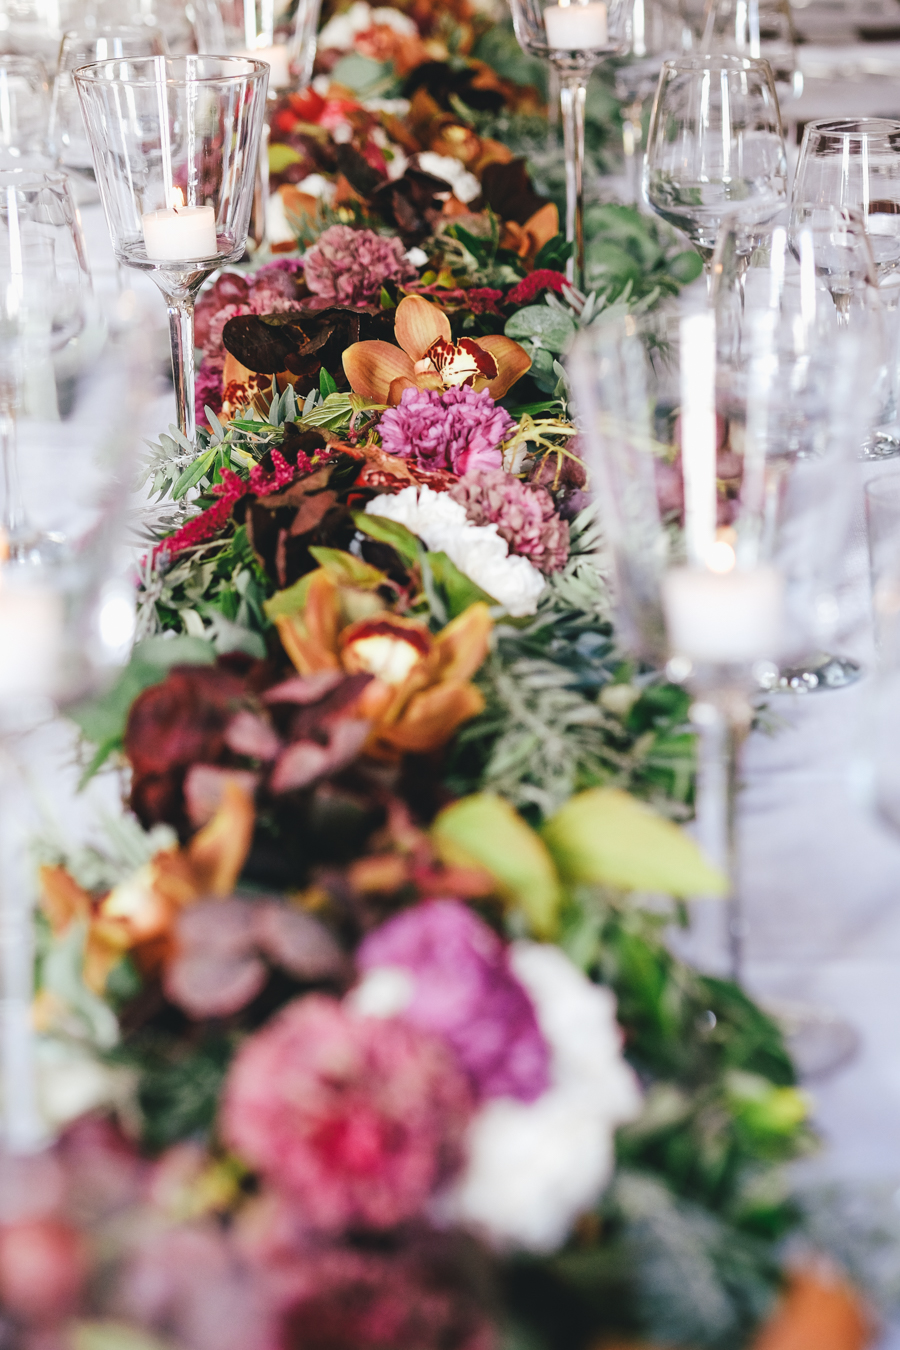 Wedding in tuscany wedding flowers destination weddings italy photography-032.jpg